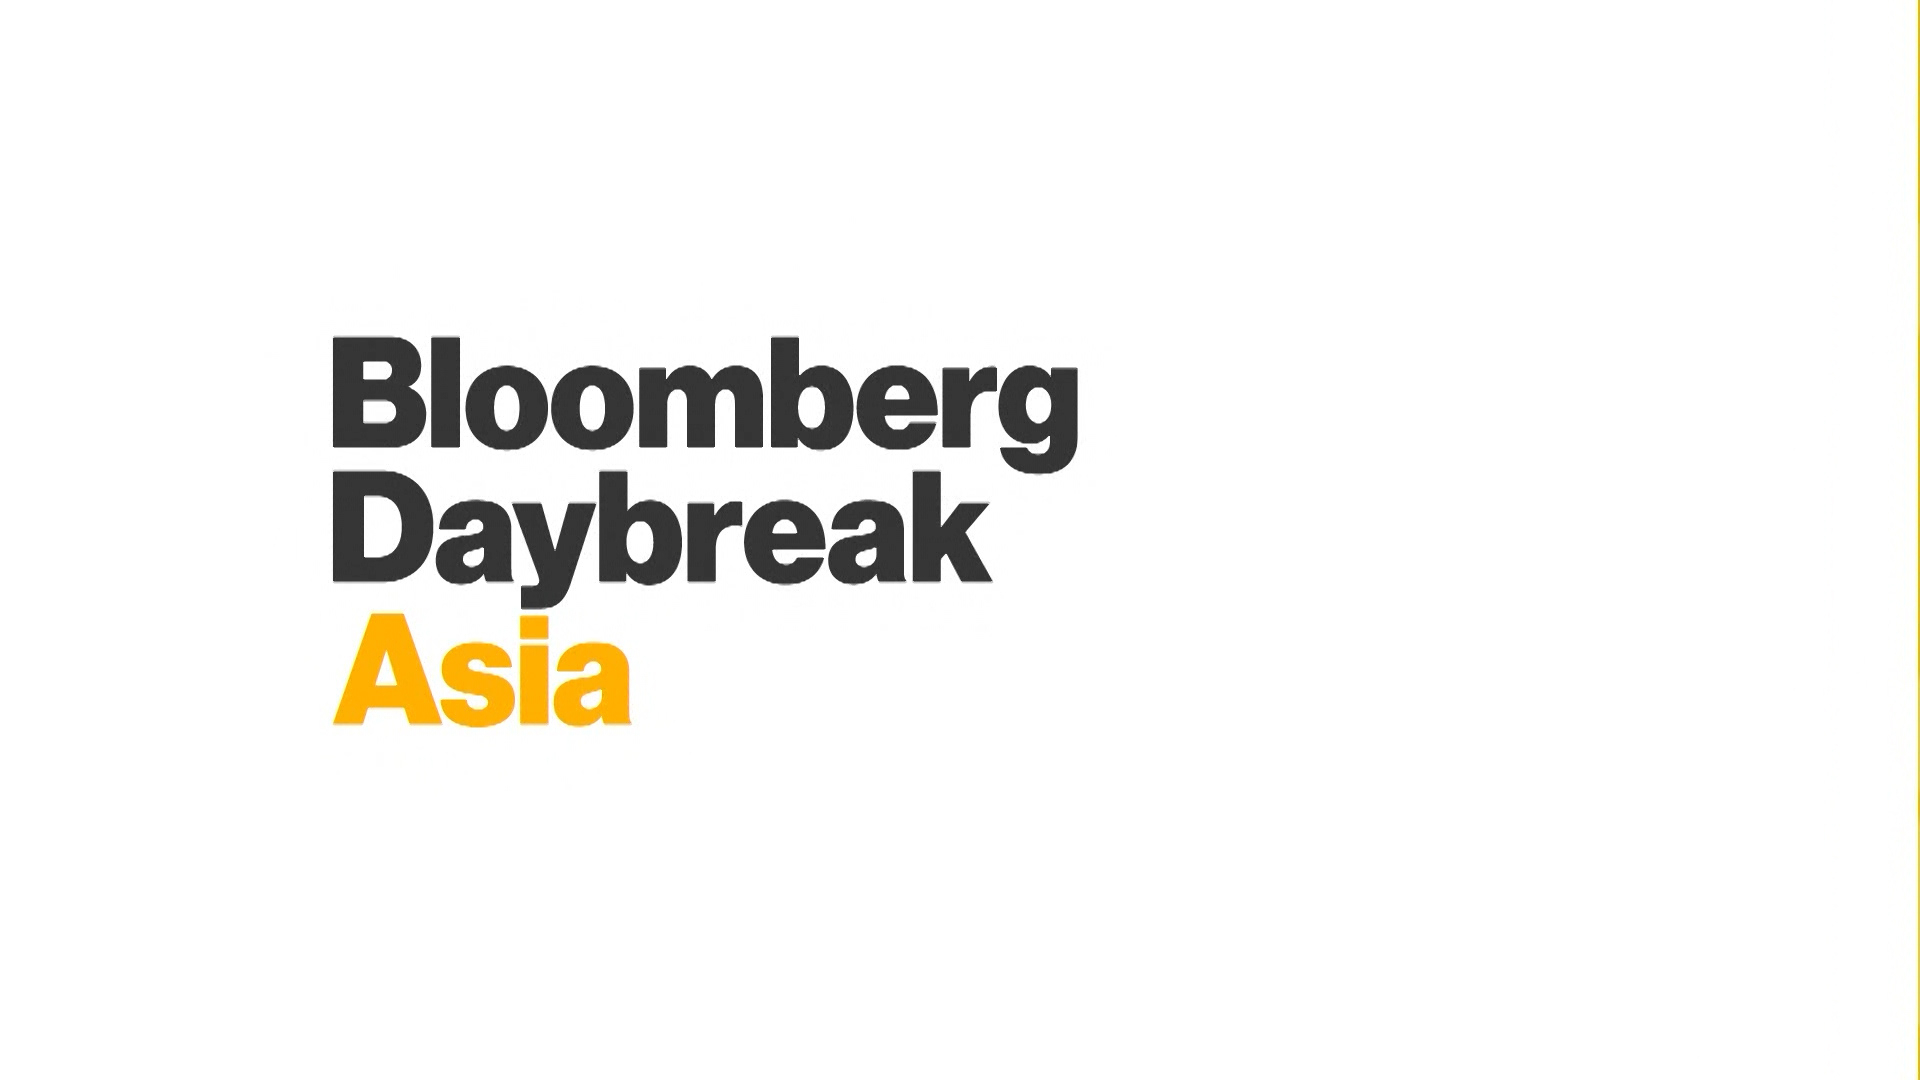 Bloomberg Daybreak: Asia  Full Show (012020)  Bloomberg regarding Ft 1000 High-Growth Companies Asia-Pacific